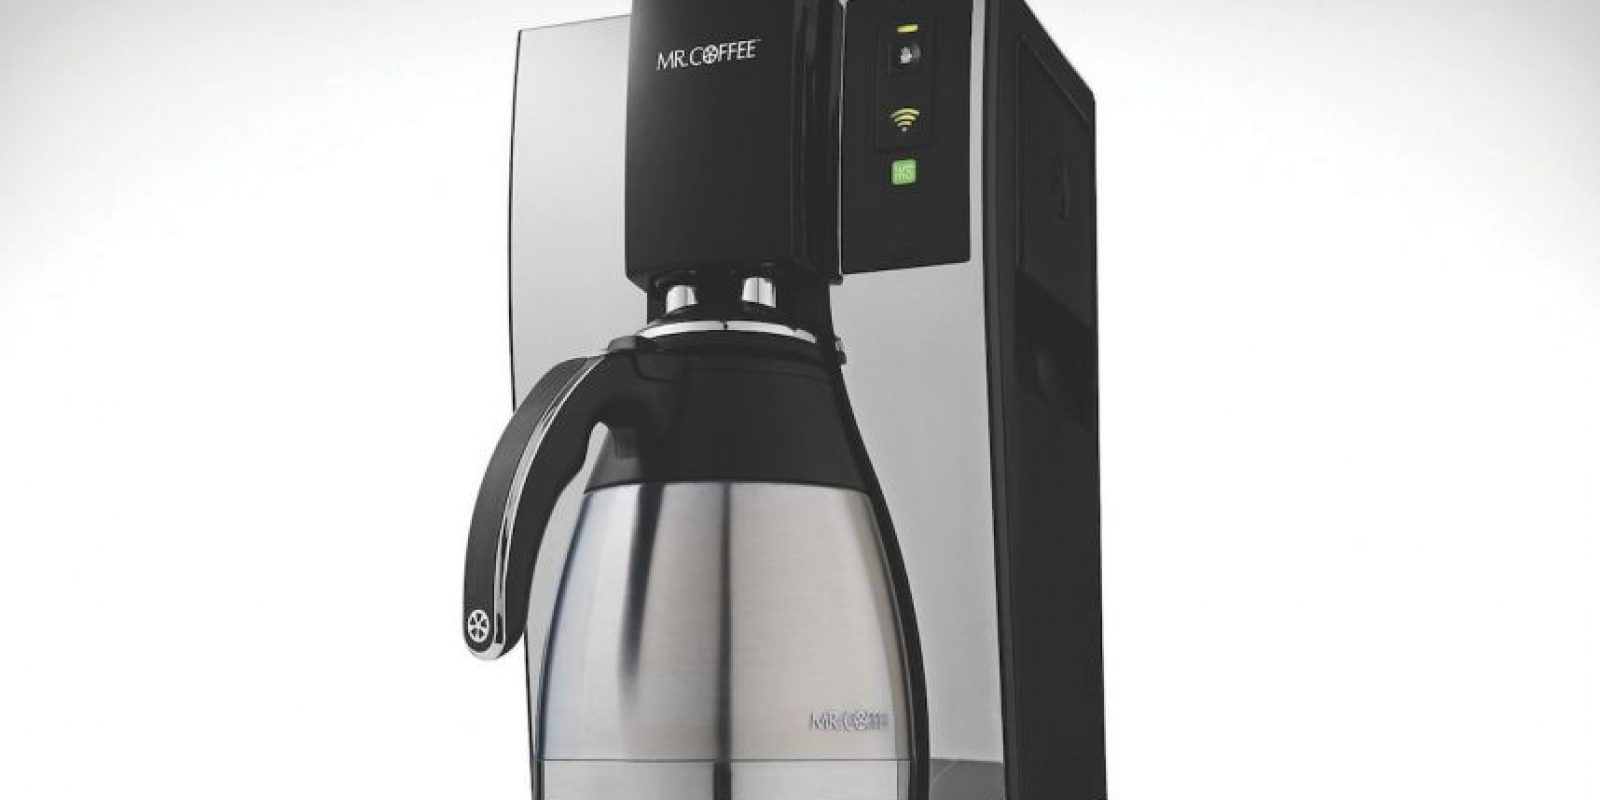 Mr. Coffee Smart Optimal Brew Coffee Maker Foto: Mrcoffee.com